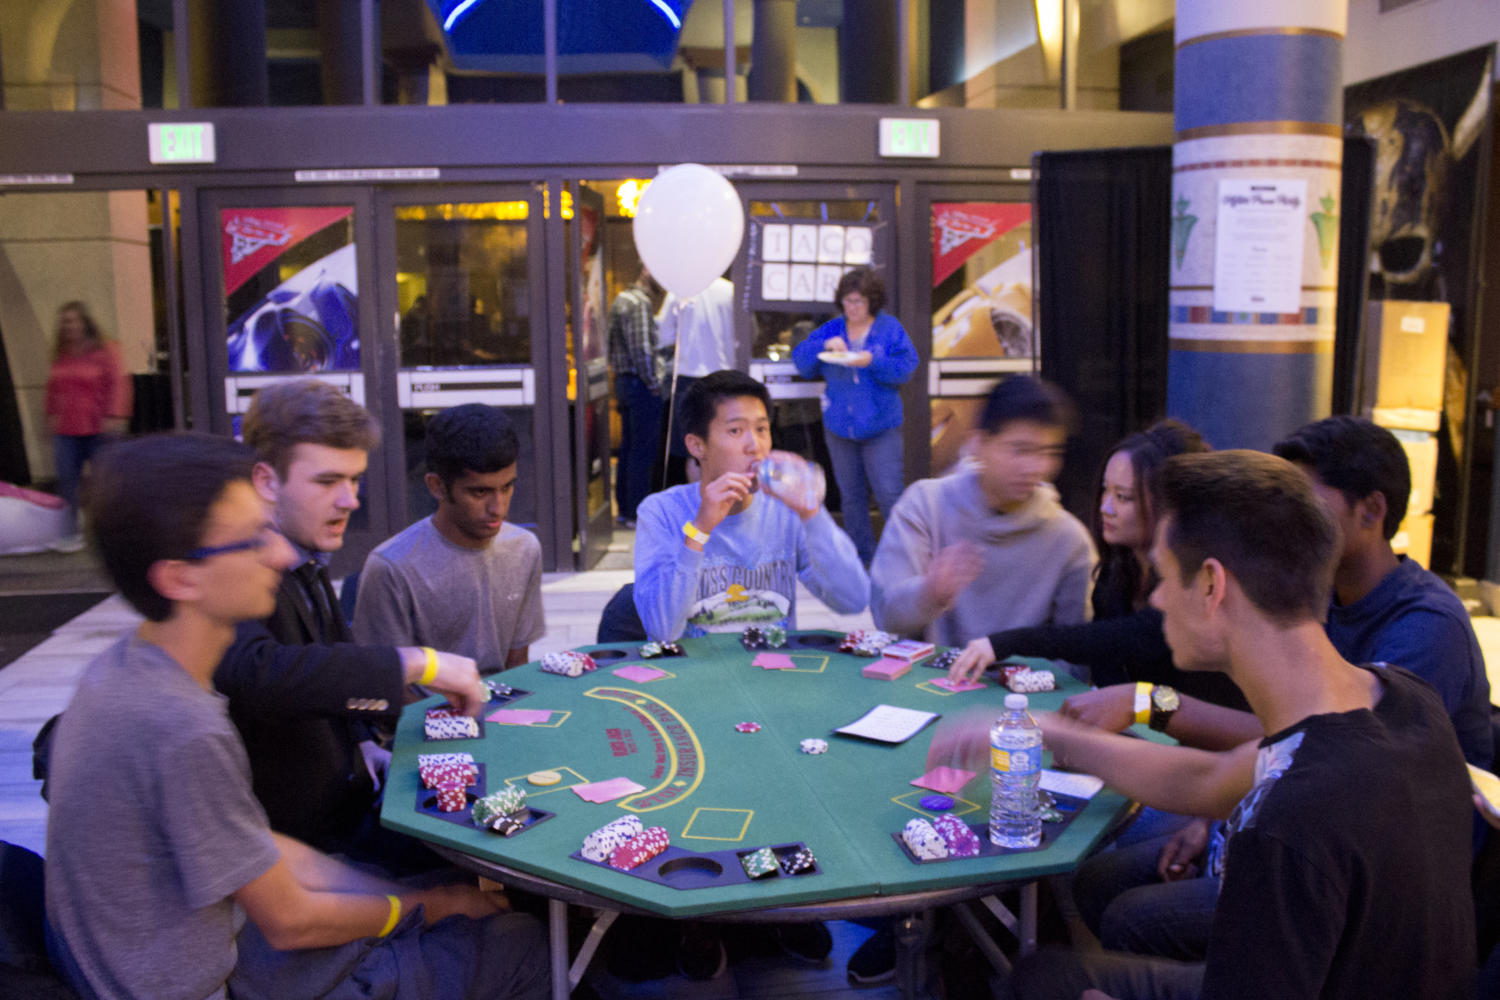 Seniors playing a game of poker at After Prom.